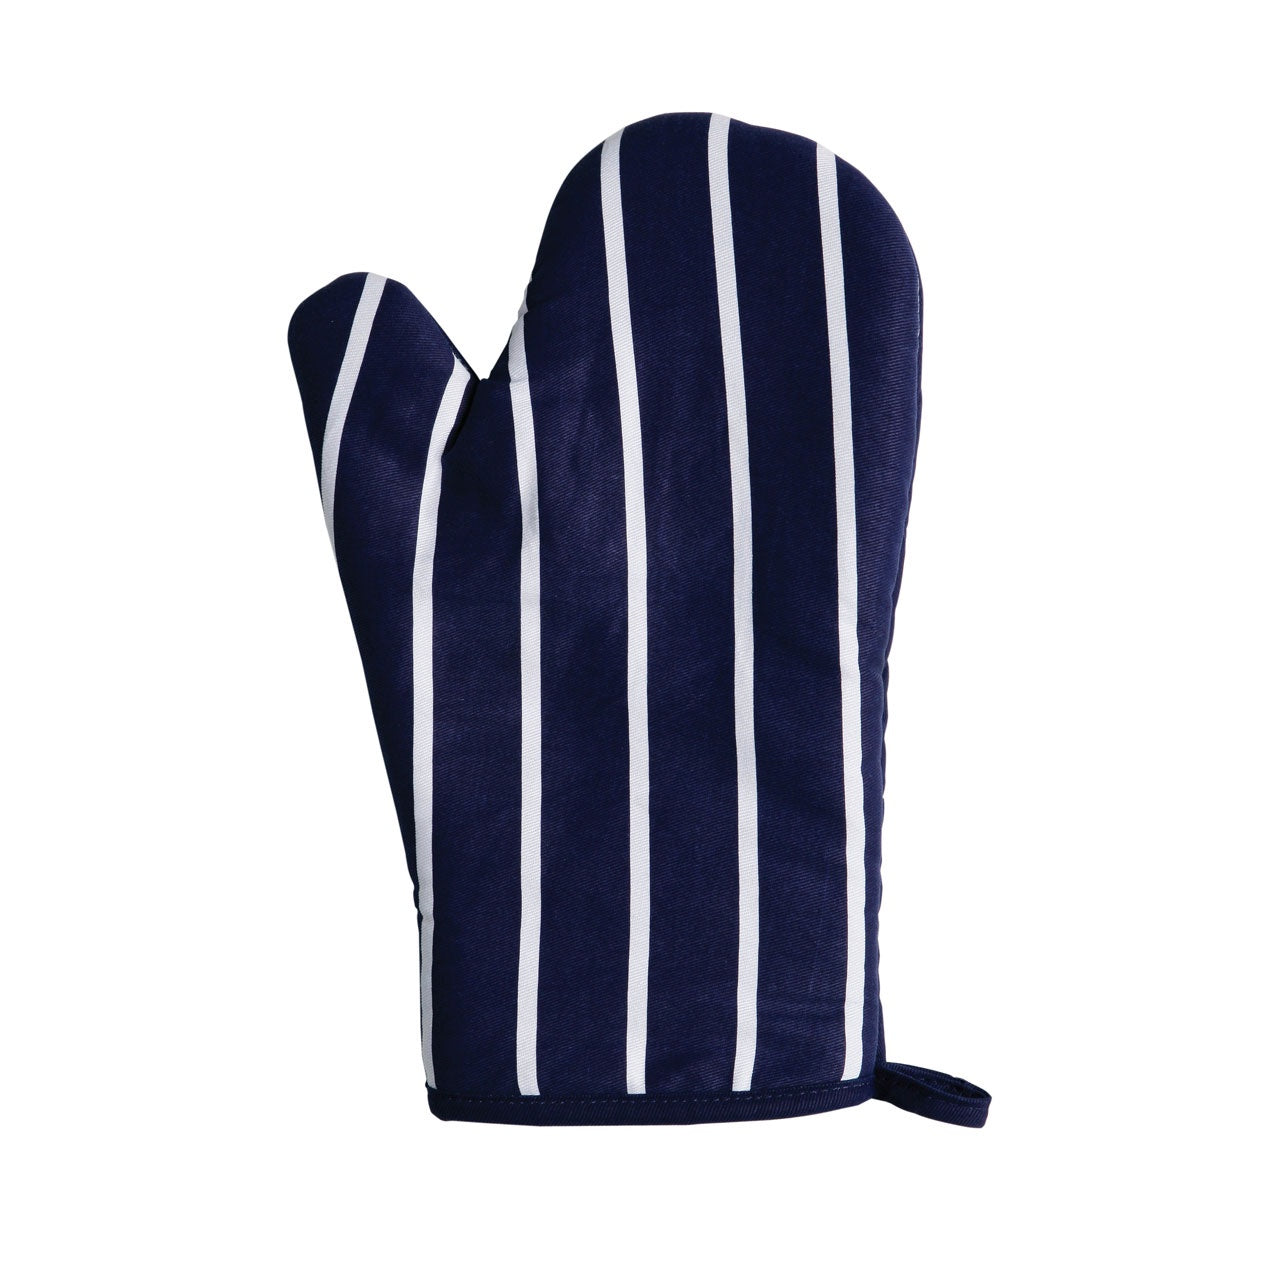 PREMIER SINGLE OVEN GLOVE NAVY BUTCHER STRIPE - 5100062